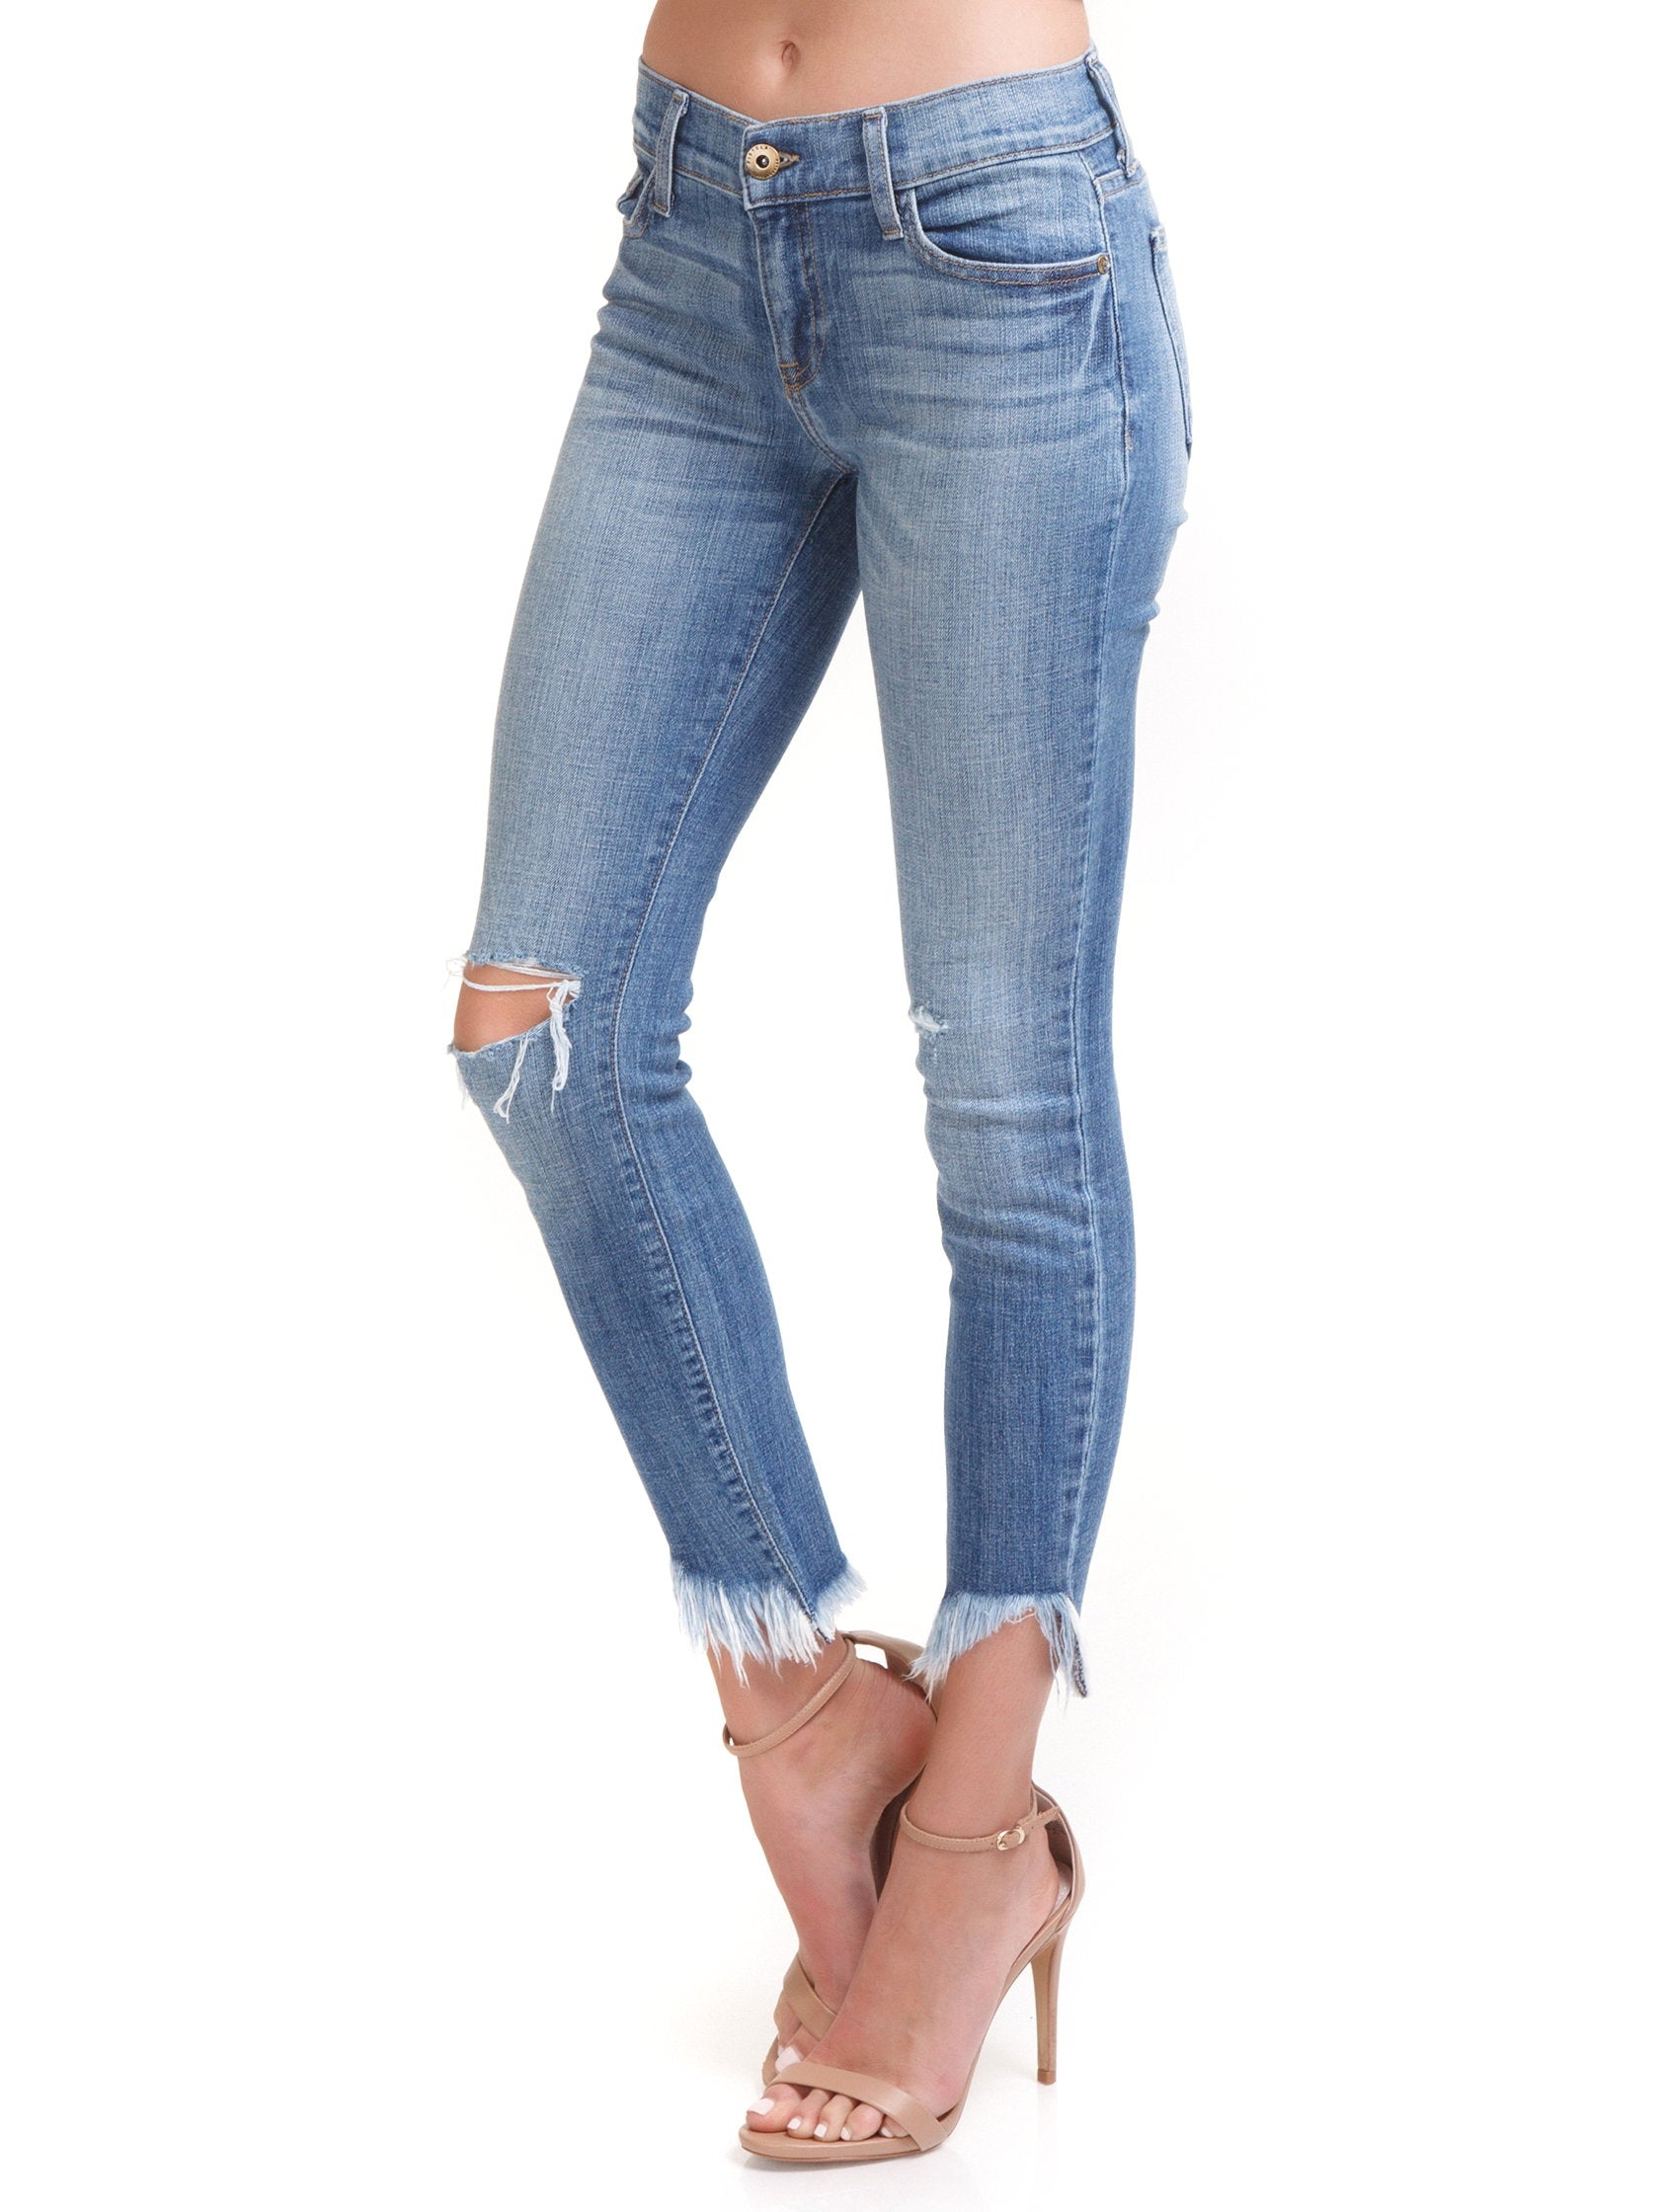 Women wearing a denim rental from PISTOLA called Audrey Distressed Crop Jeans